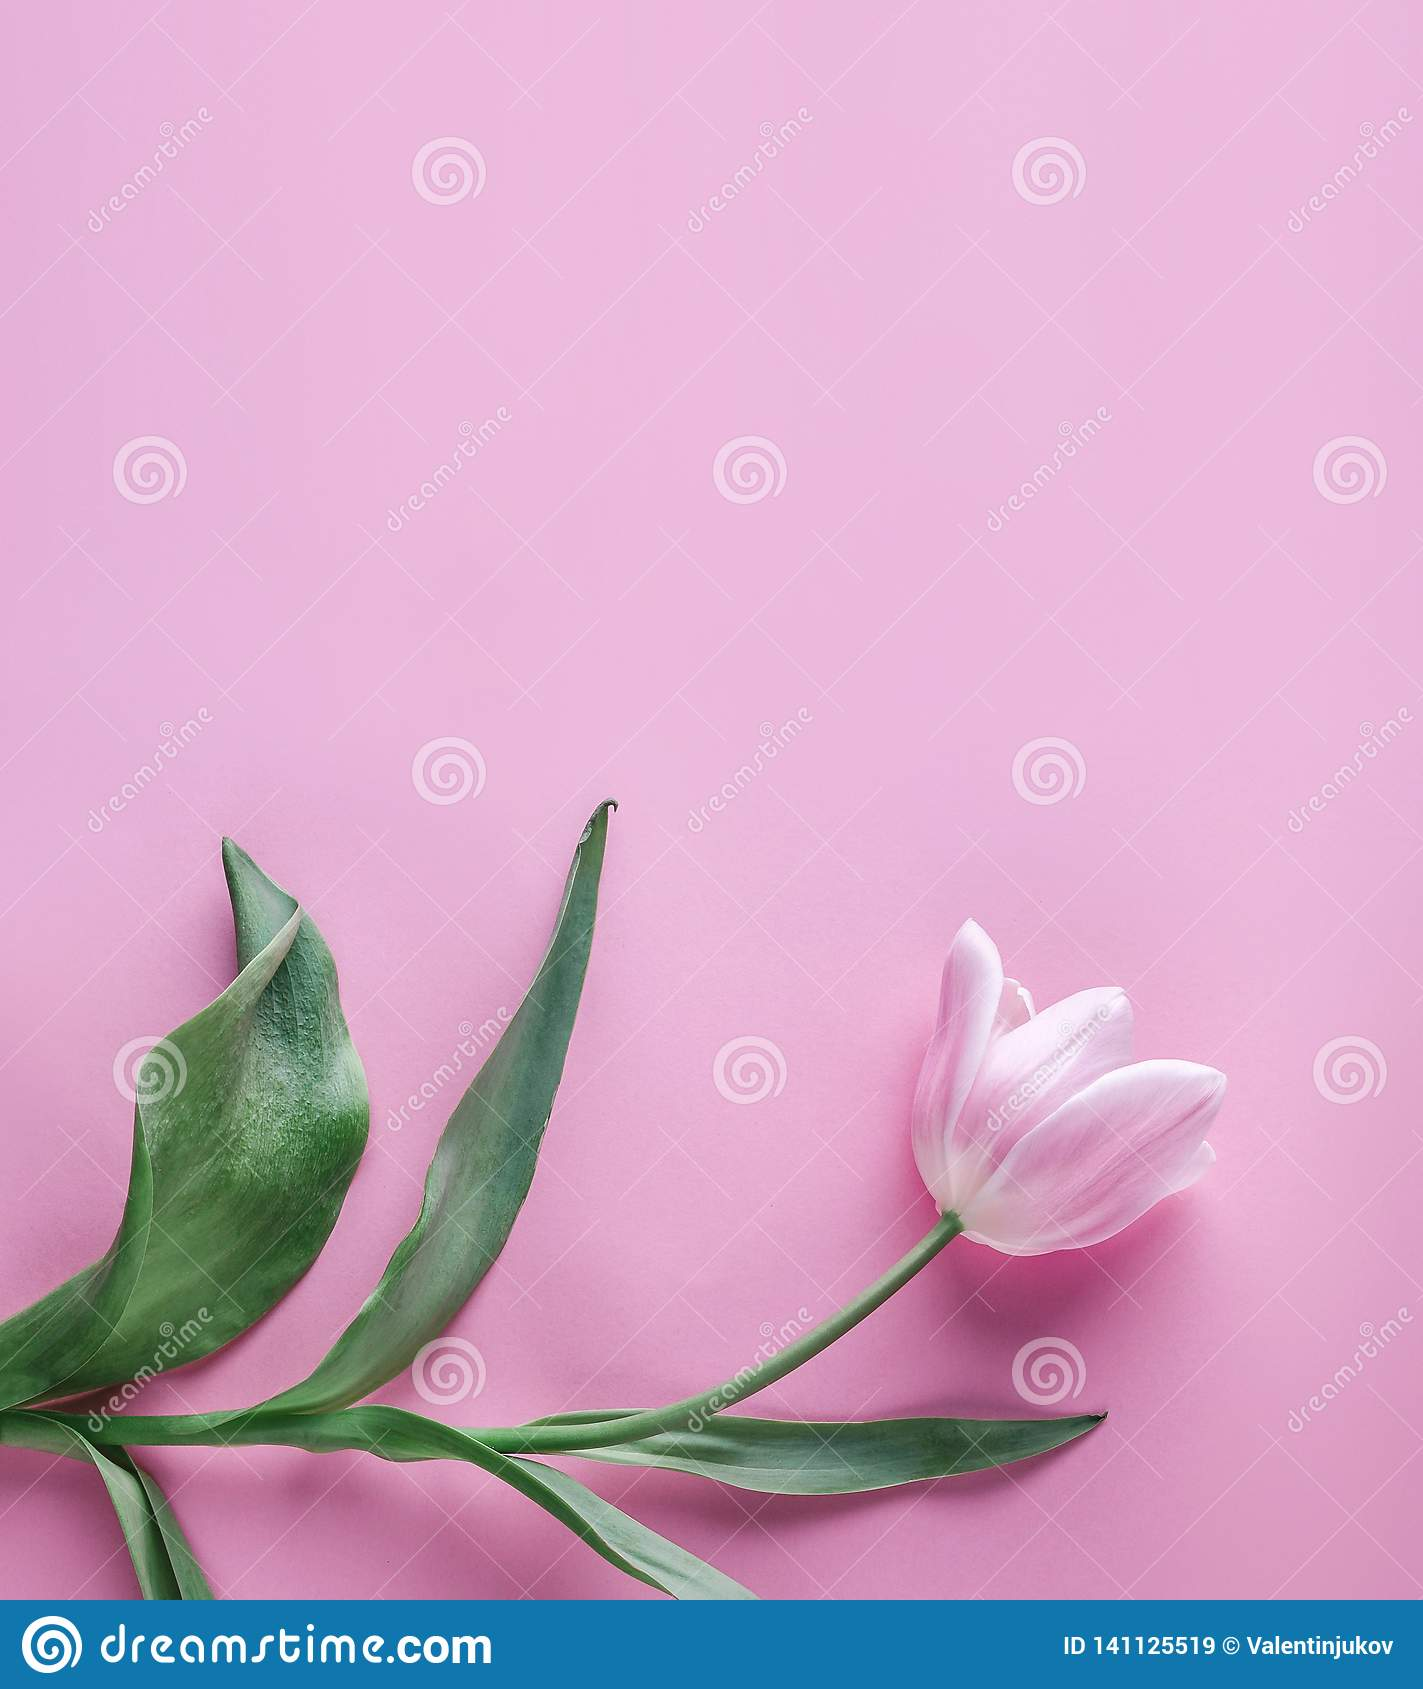 Pink tulip flower on pink background. Waiting for spring. Card for Mothers day, 8 March, Happy Easter. Greeting card